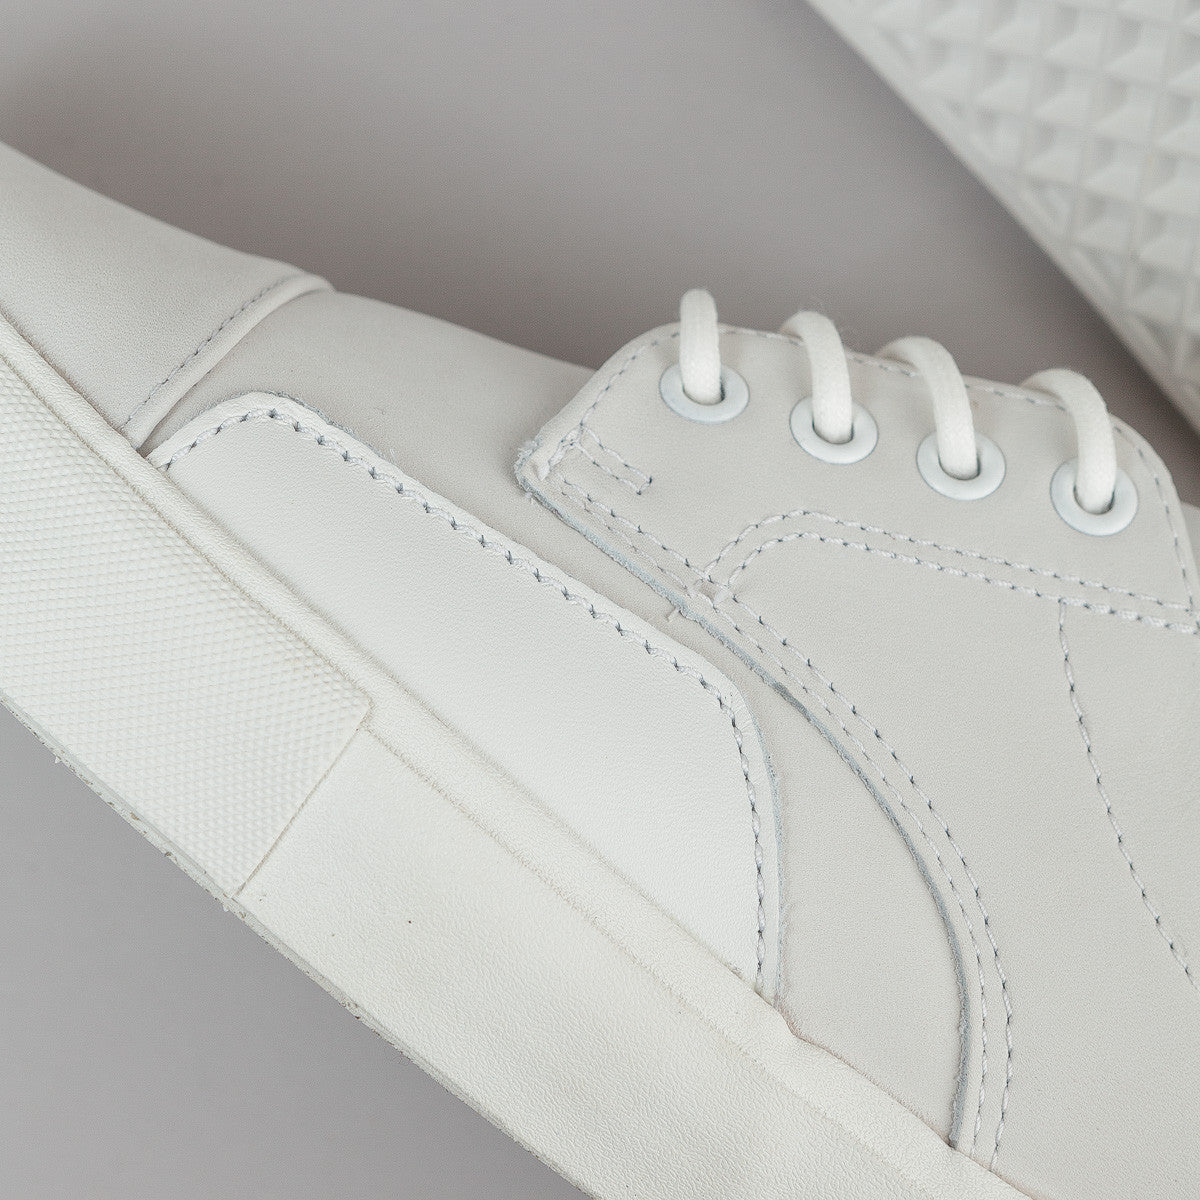 Vans X Luke Meier Seylynn 'S' Shoes - White